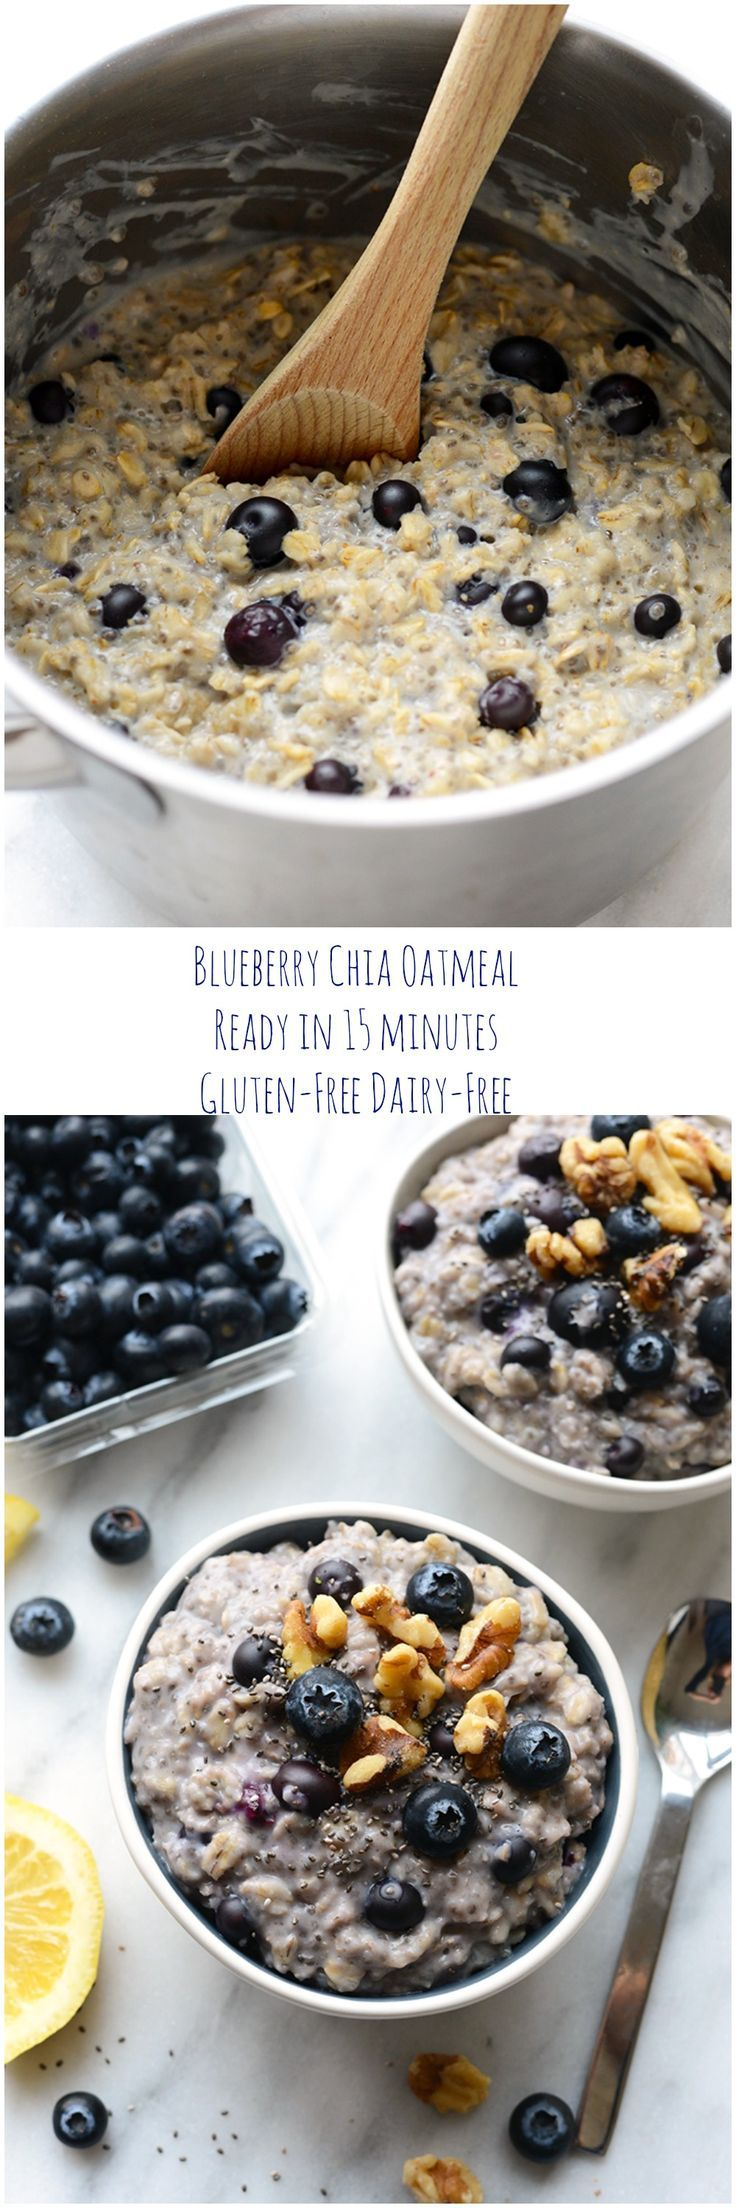 14 best healthy oatmeal and granola recipes images on pinterest blueberry chia oatmeal ready in just 15 minutes this healthy breakfast is filled with malvernweather Image collections